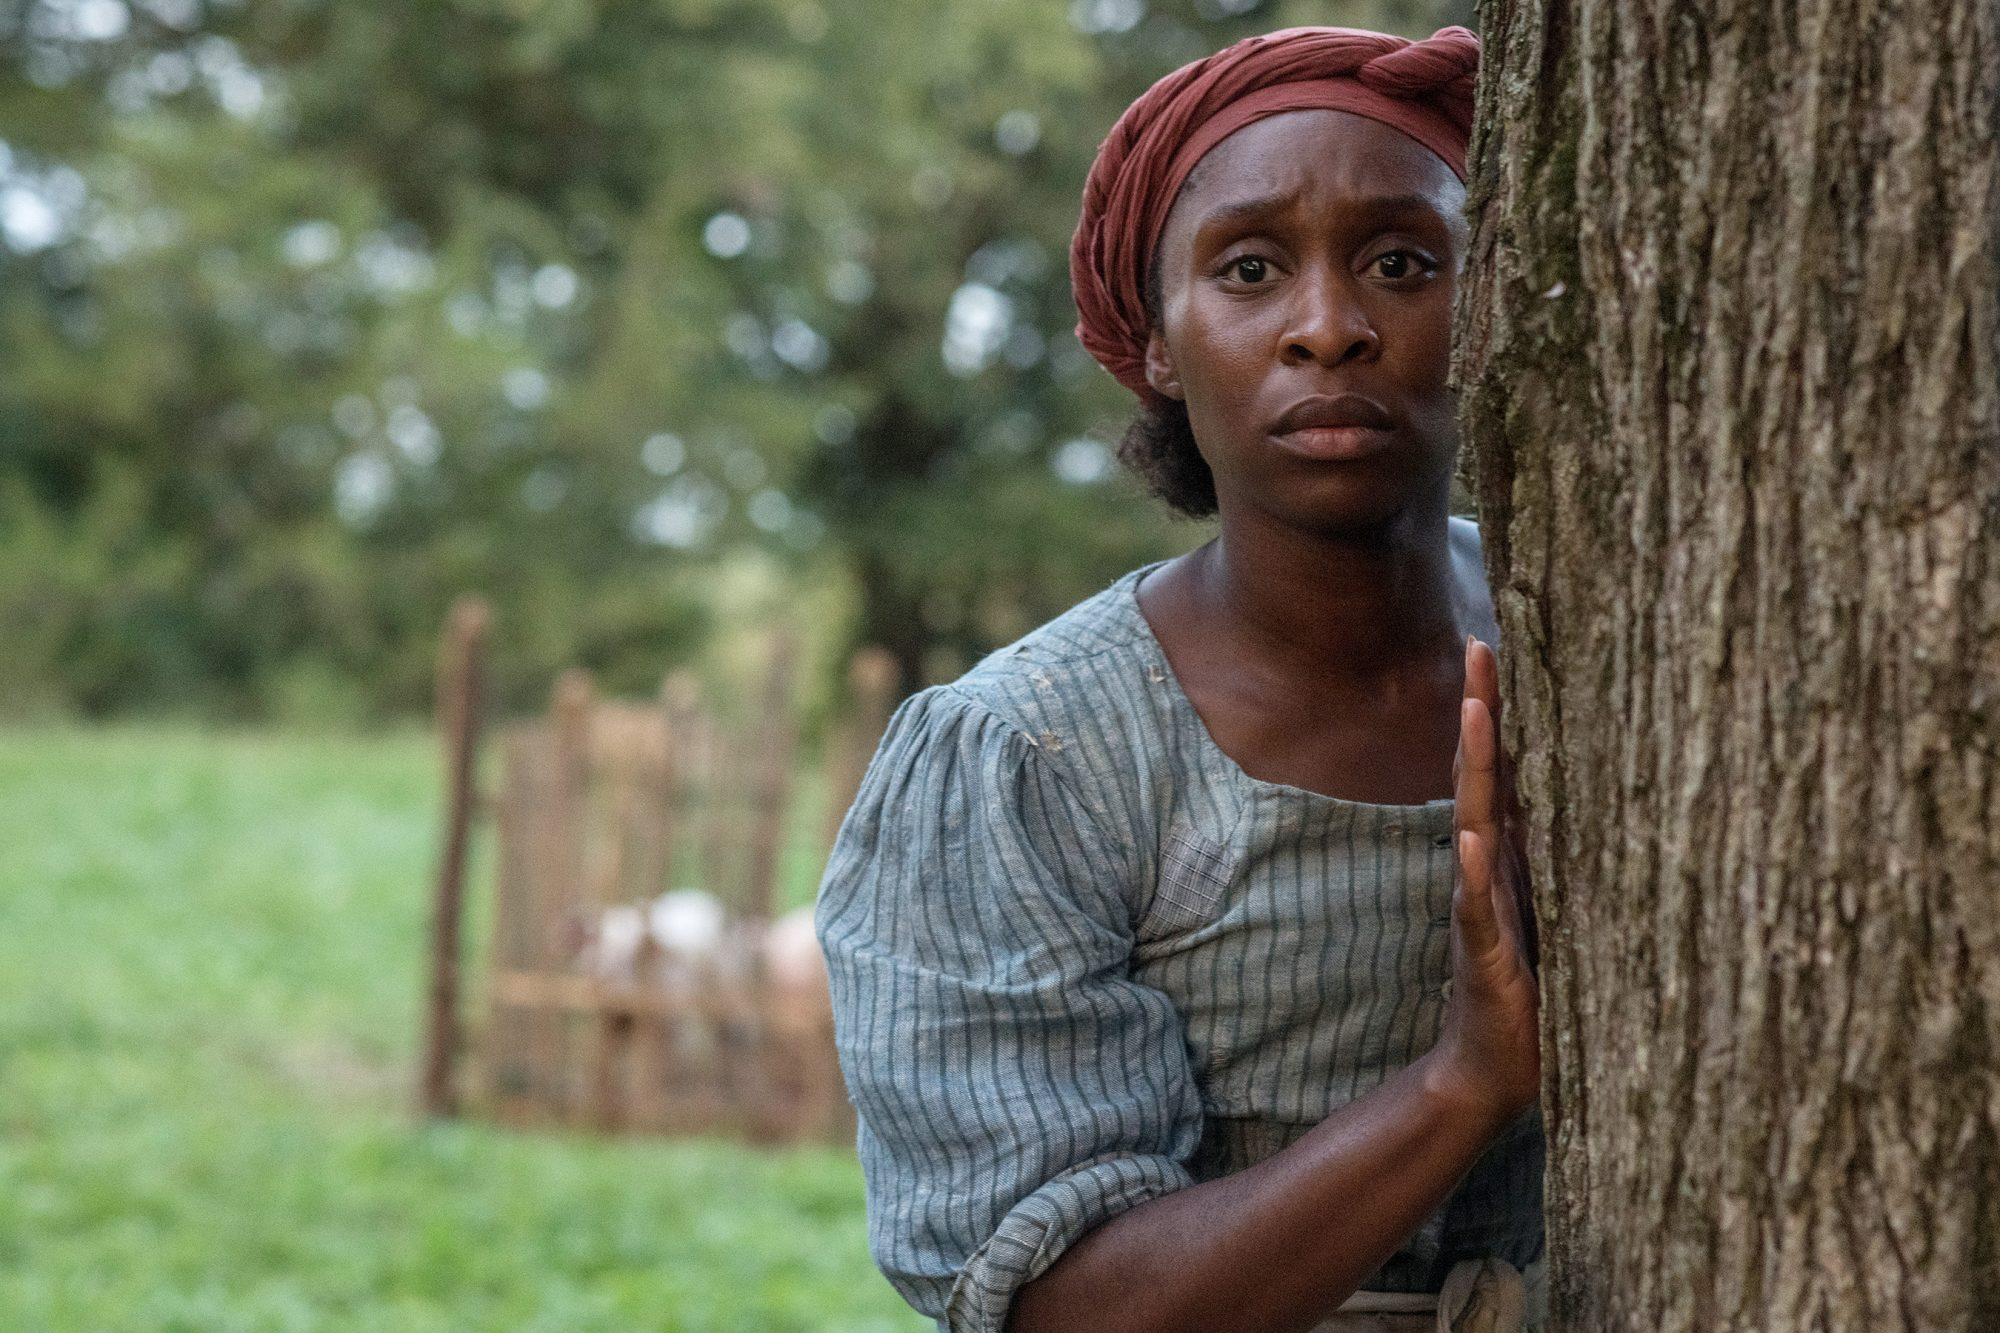 4130_D002_00002_RC Cynthia Erivo stars as Harriet Tubman in HARRIET, a Focus Features release. Credit: Glen Wilson / Focus Features